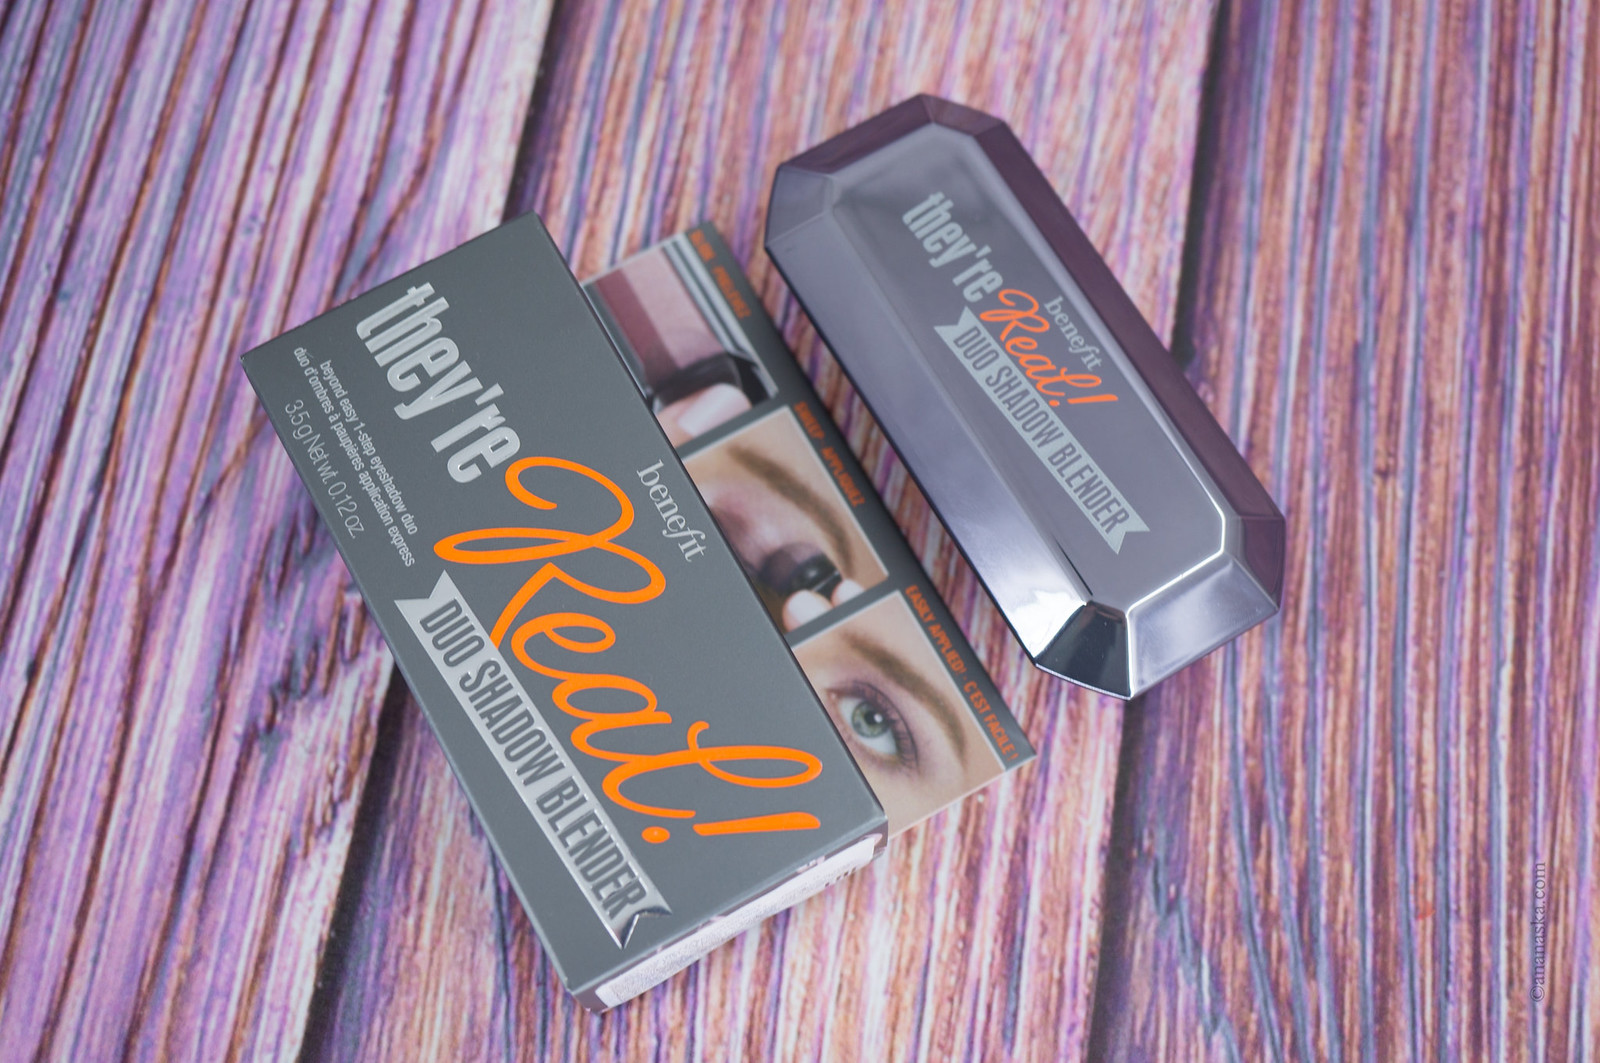 Benefit They're REAL Duo Shadow Blender #Provocative Plum